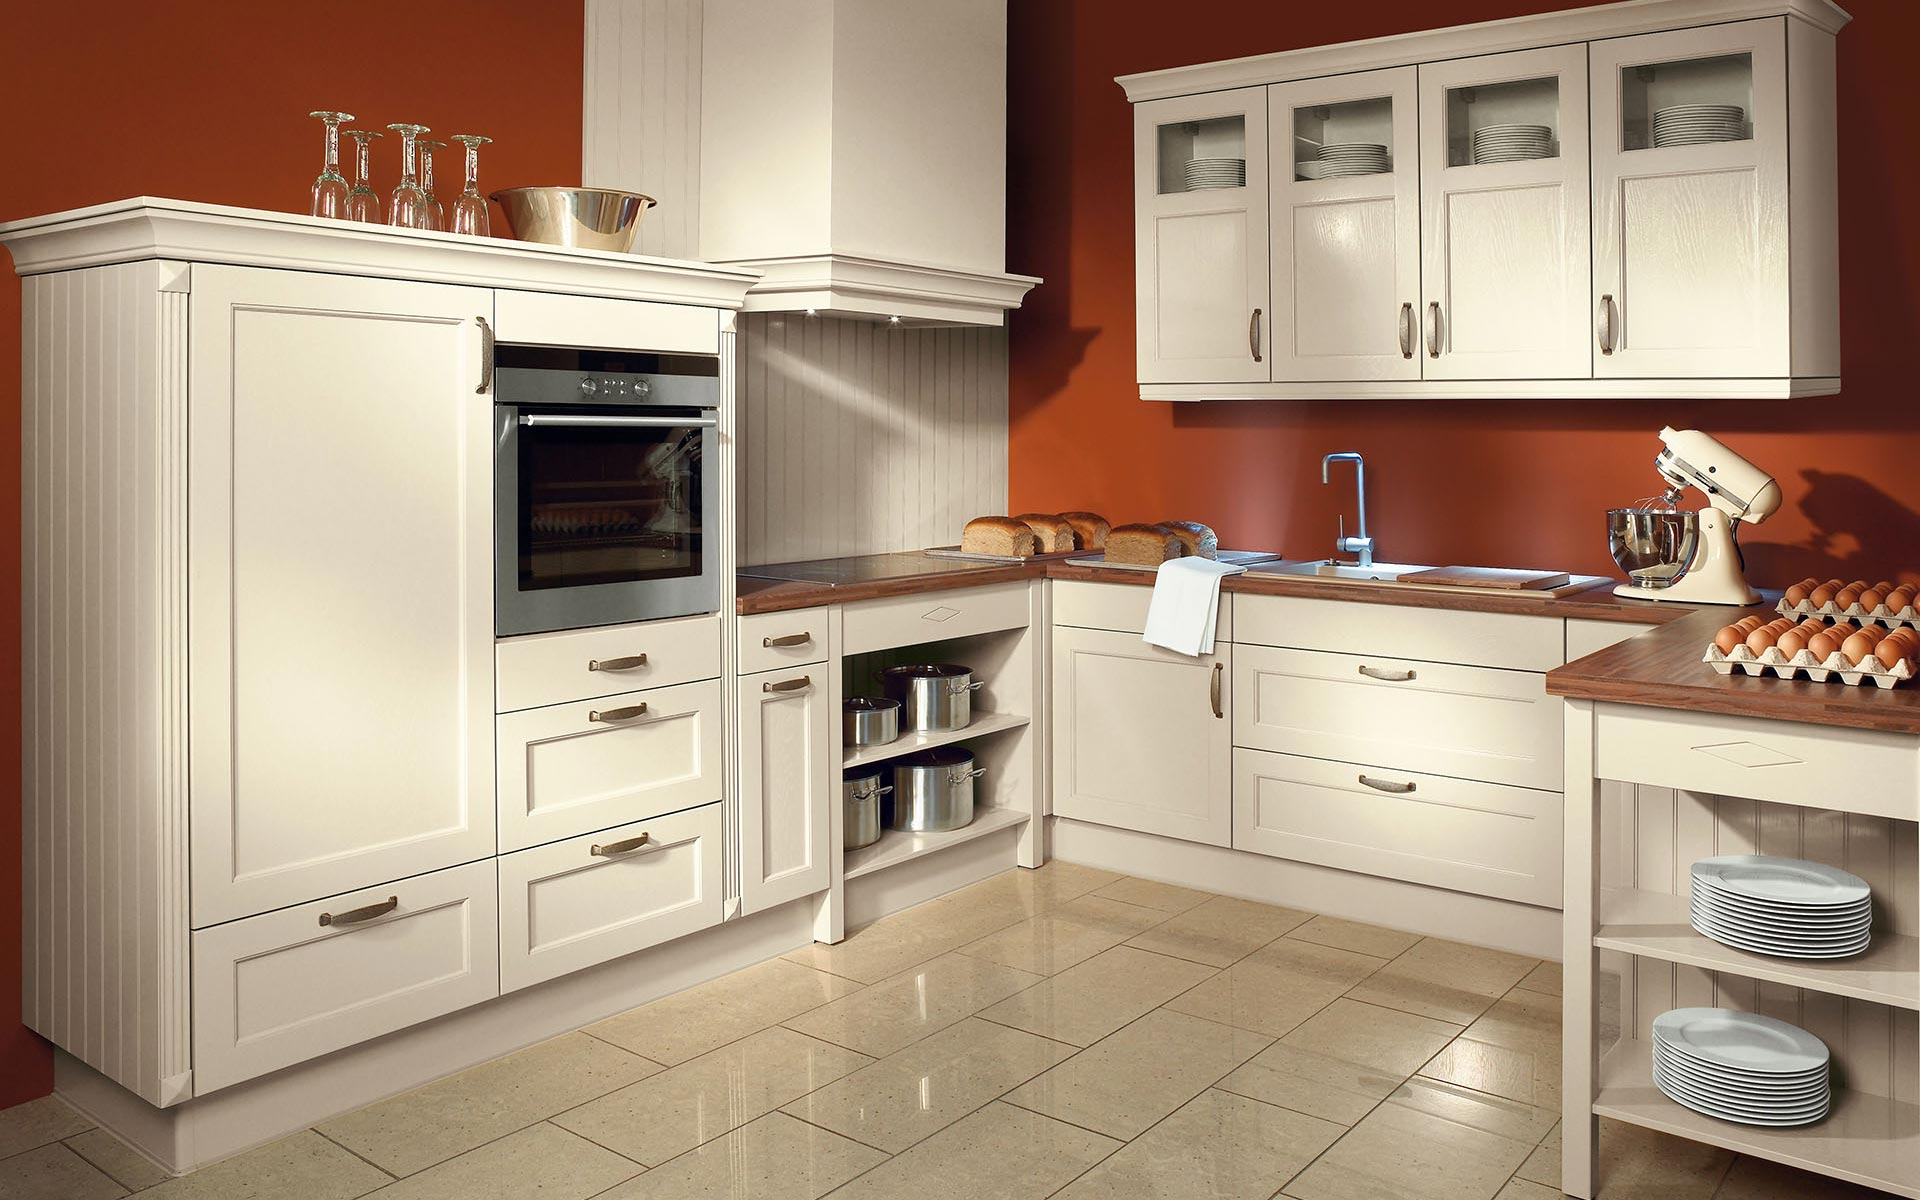 Toronto: Kitchens from Germany, Europe. Toscana Magnolie